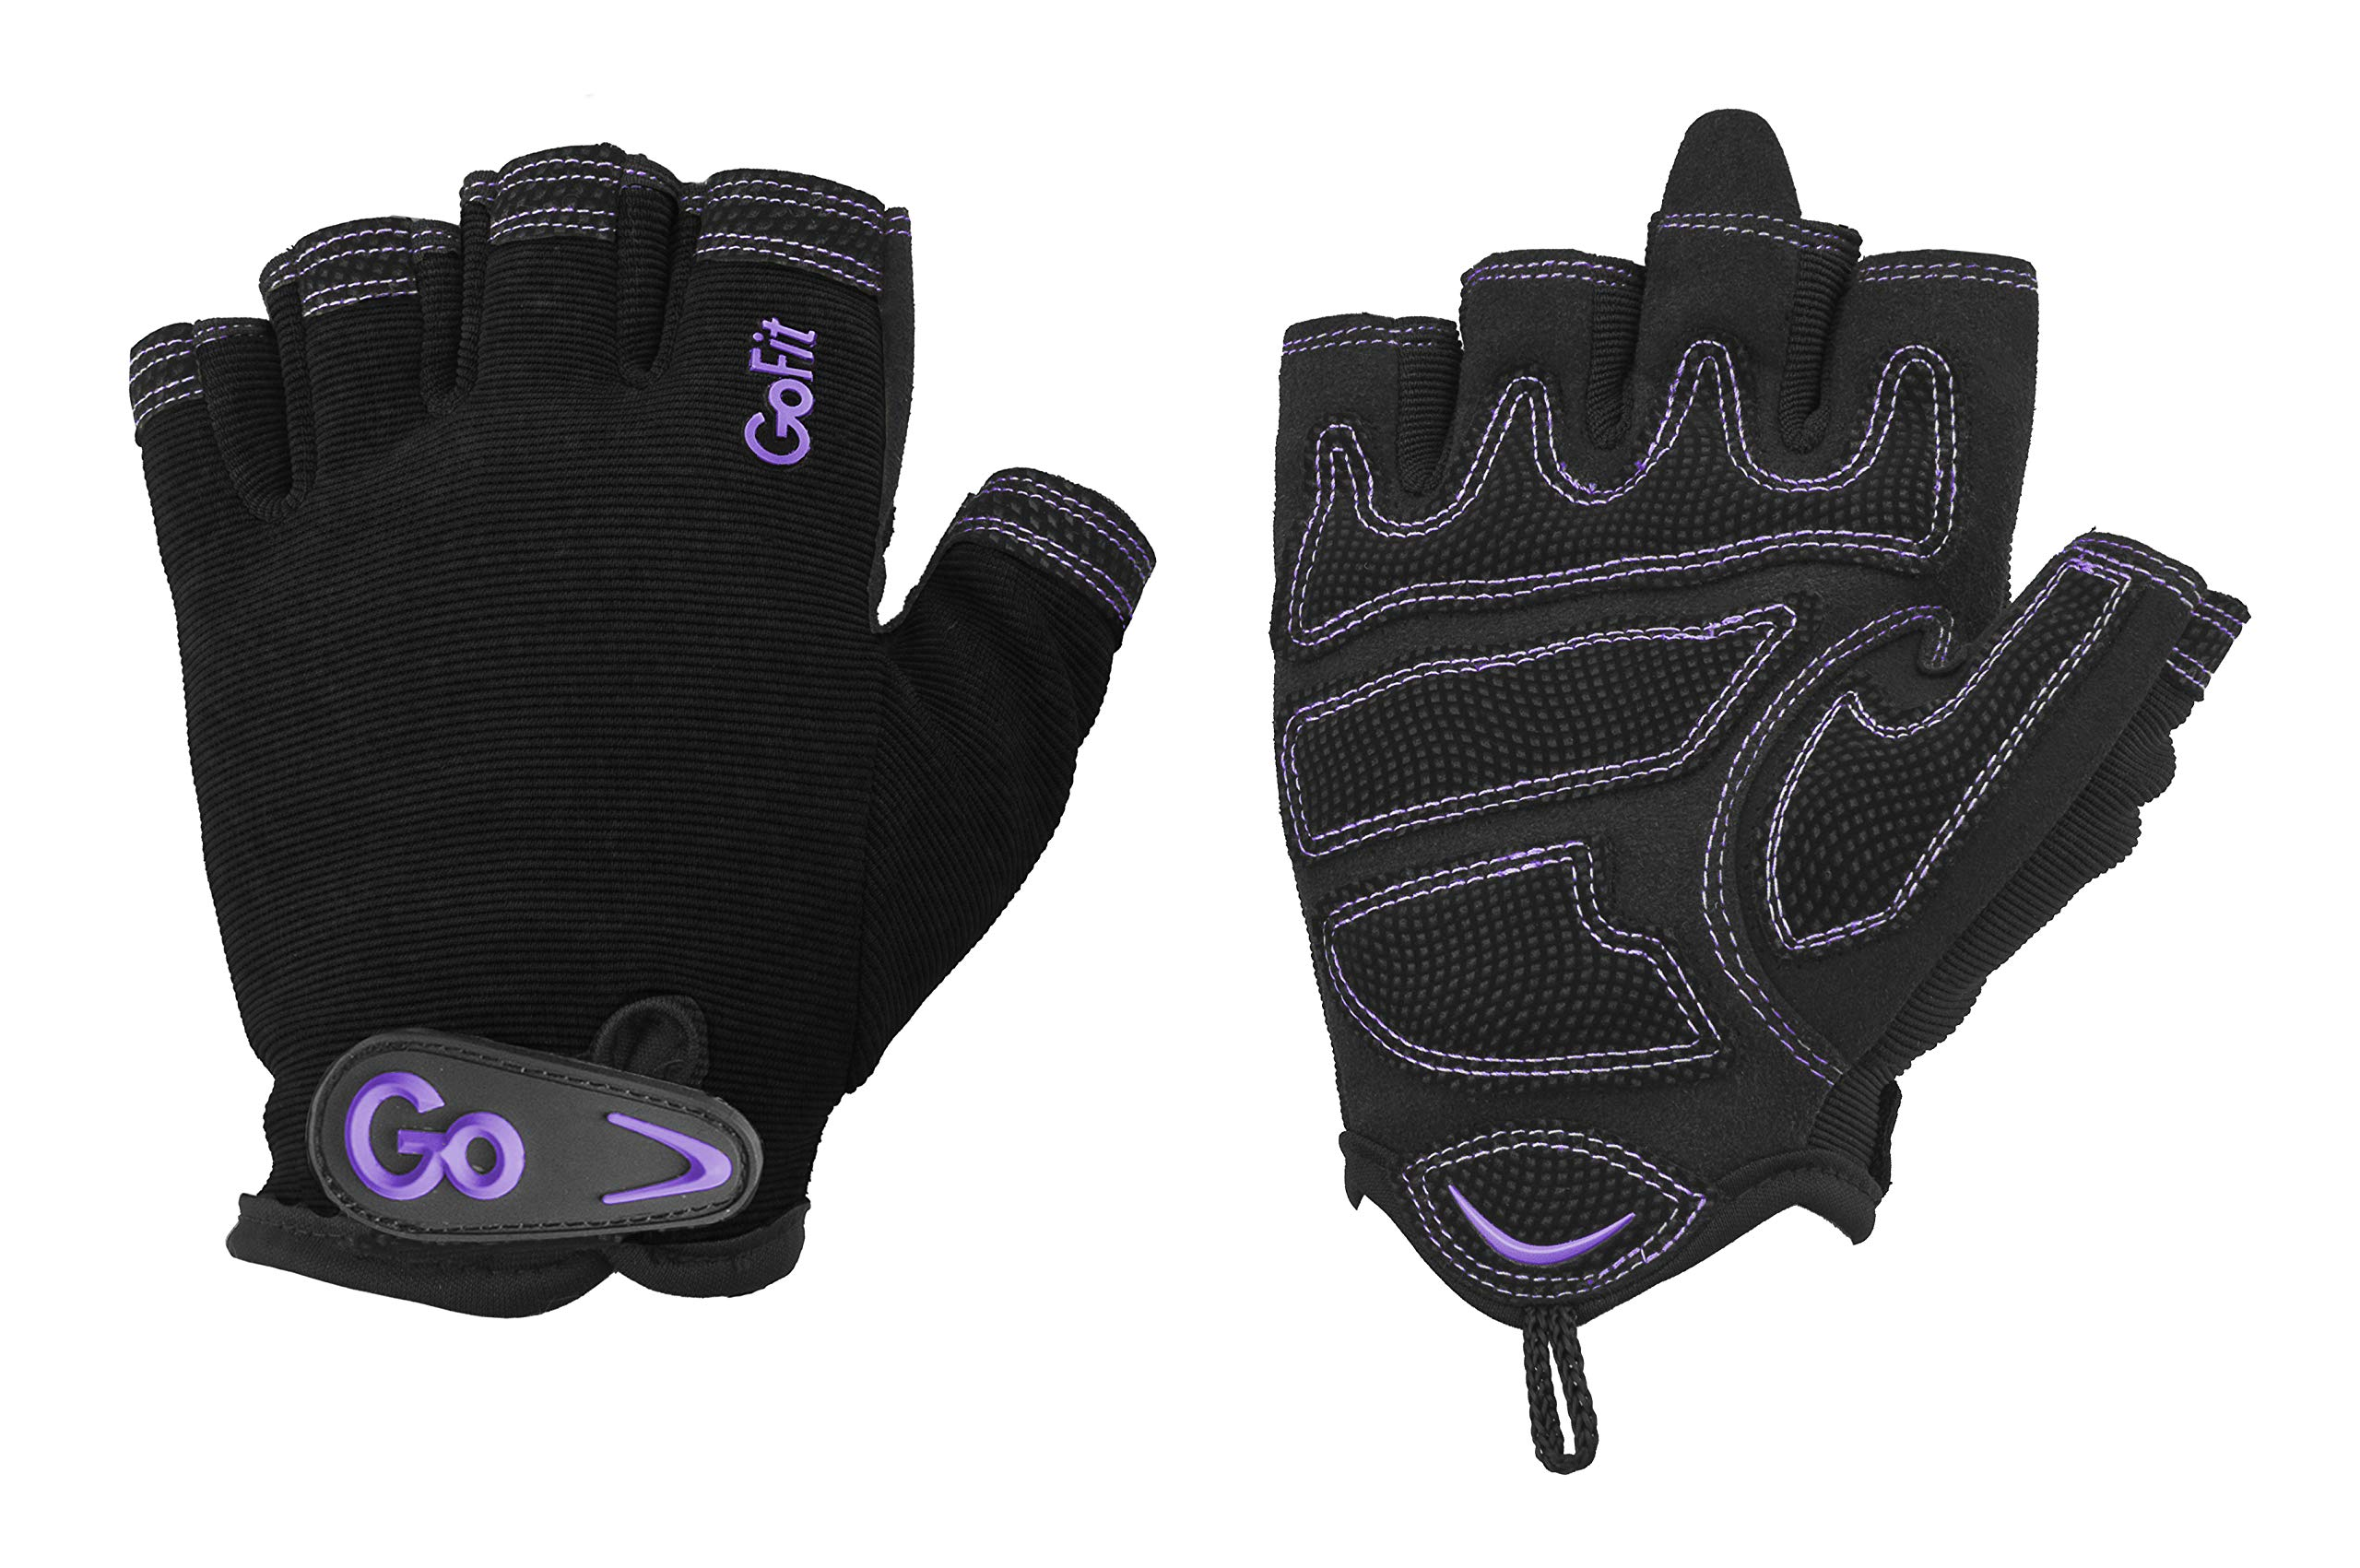 GoFit Xtrainer Cross Training Glove - Synthetic Leather Palm for Women - Medium